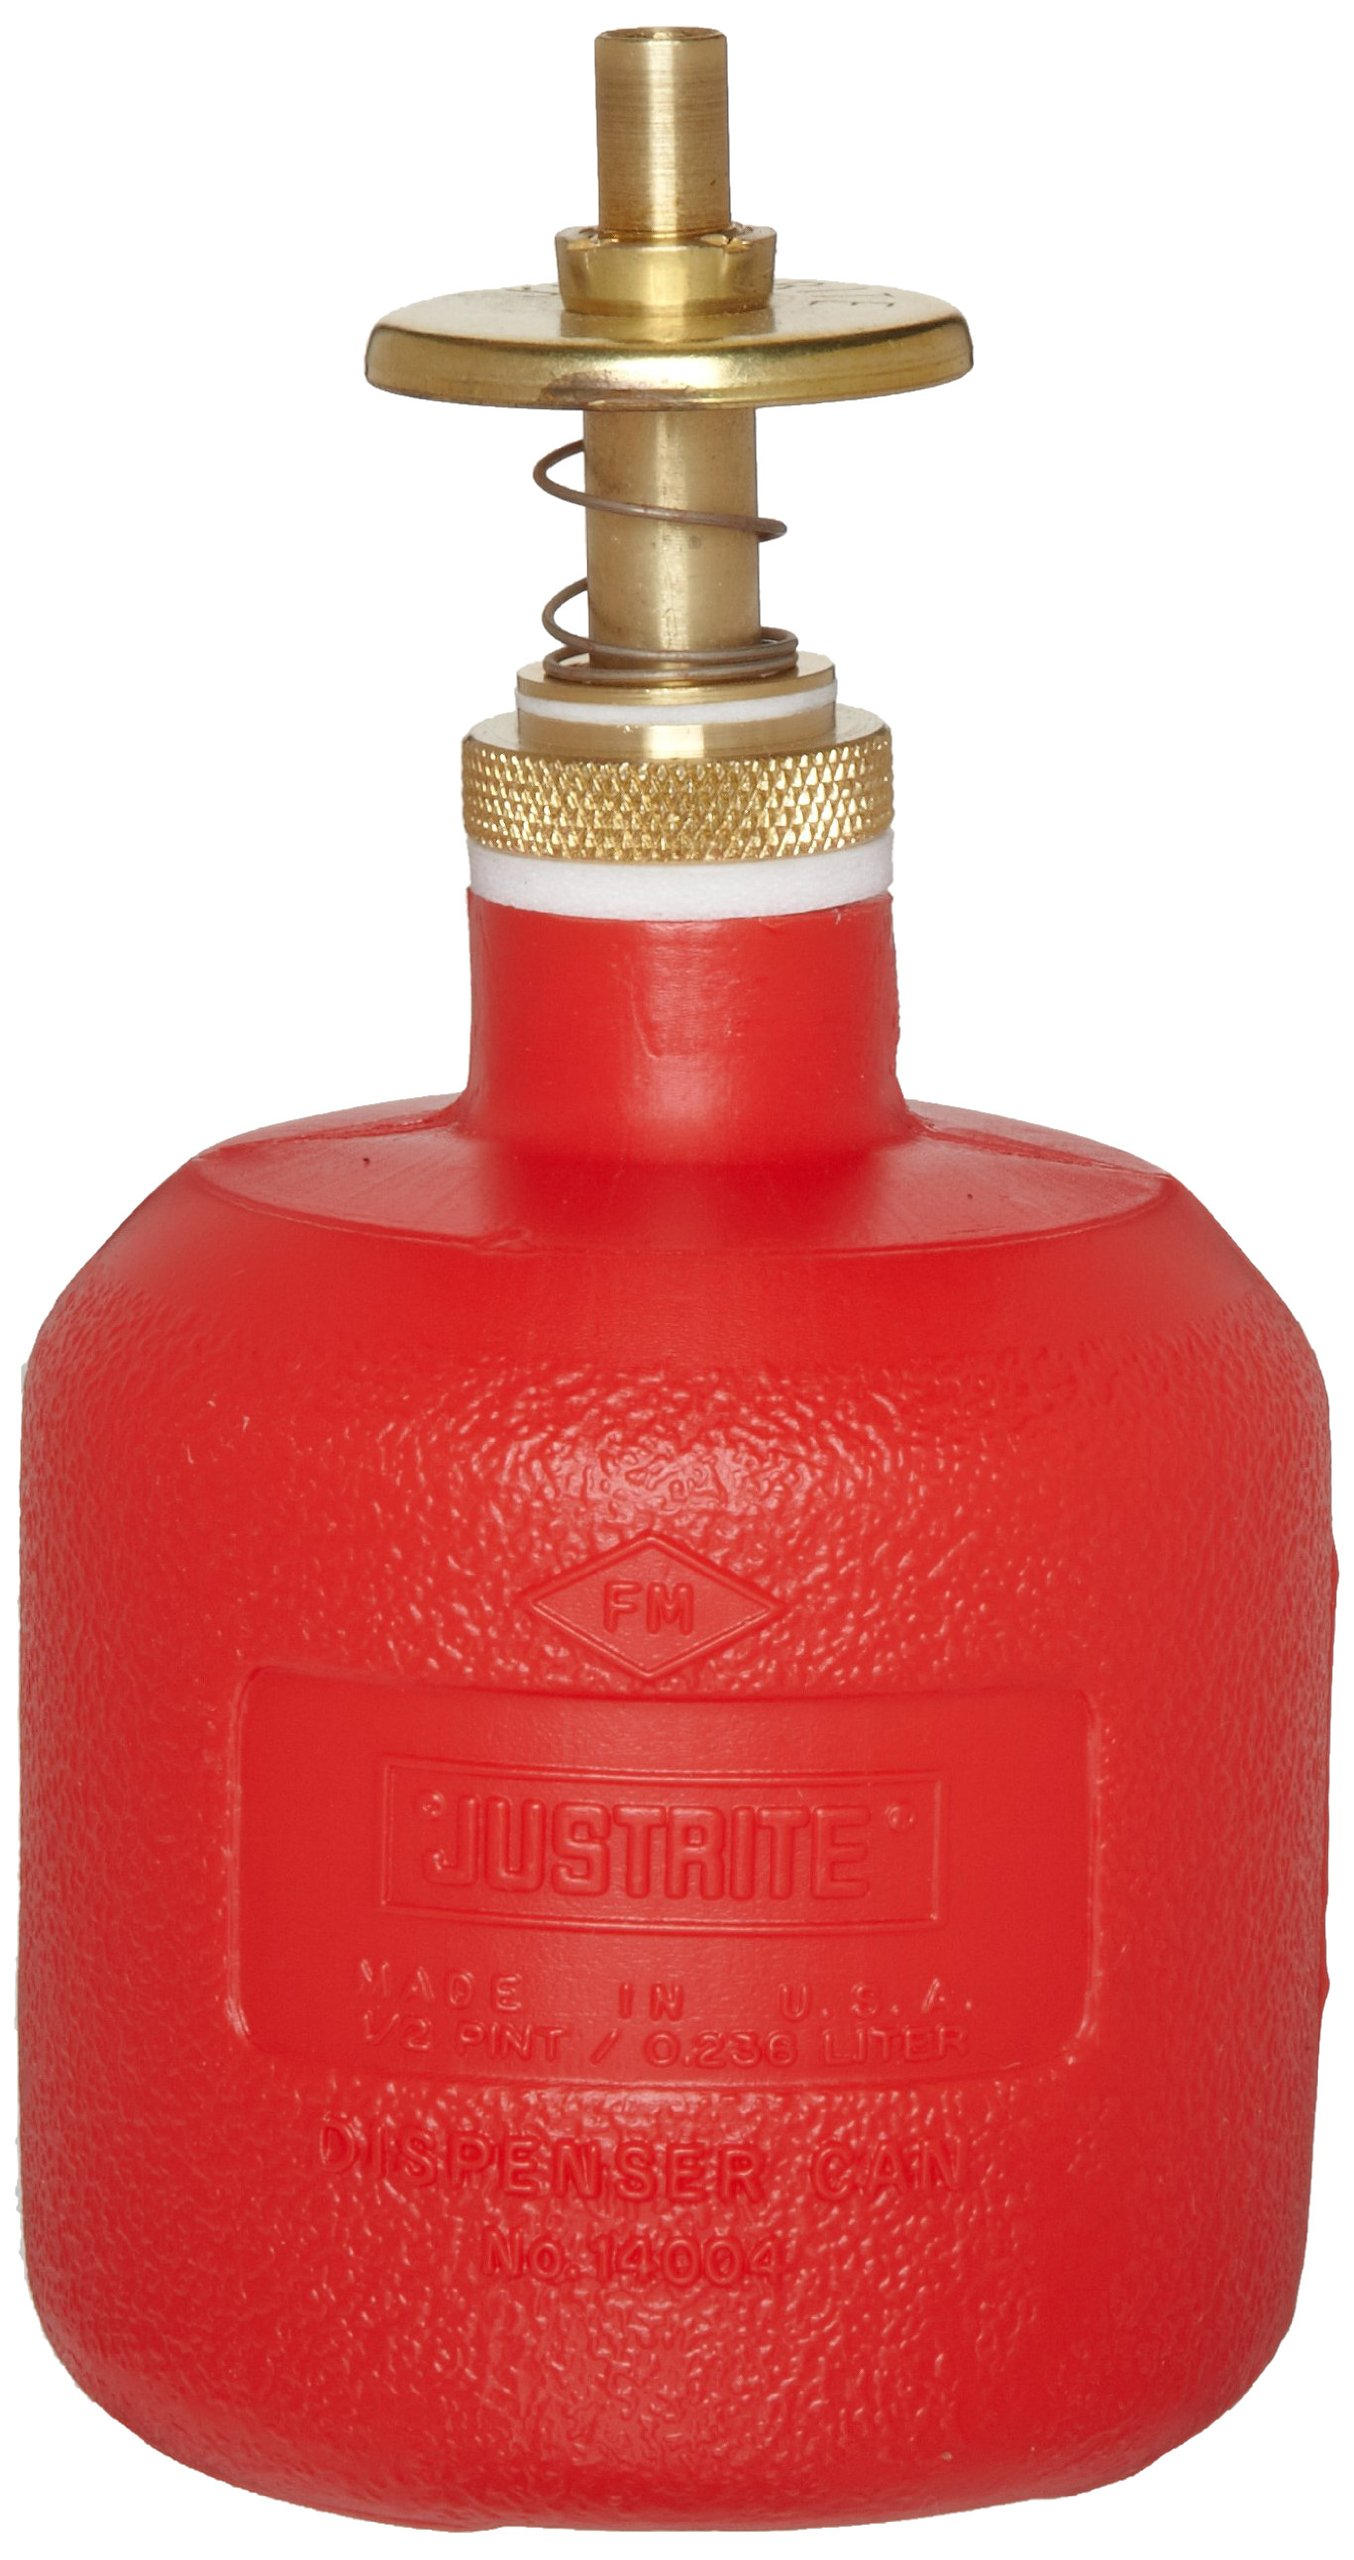 Justrite 14004 8 oz Capacity, 5 1/2'' H, 3 1/8'' O.D High-Density Polyethylene Red Dispenser Can